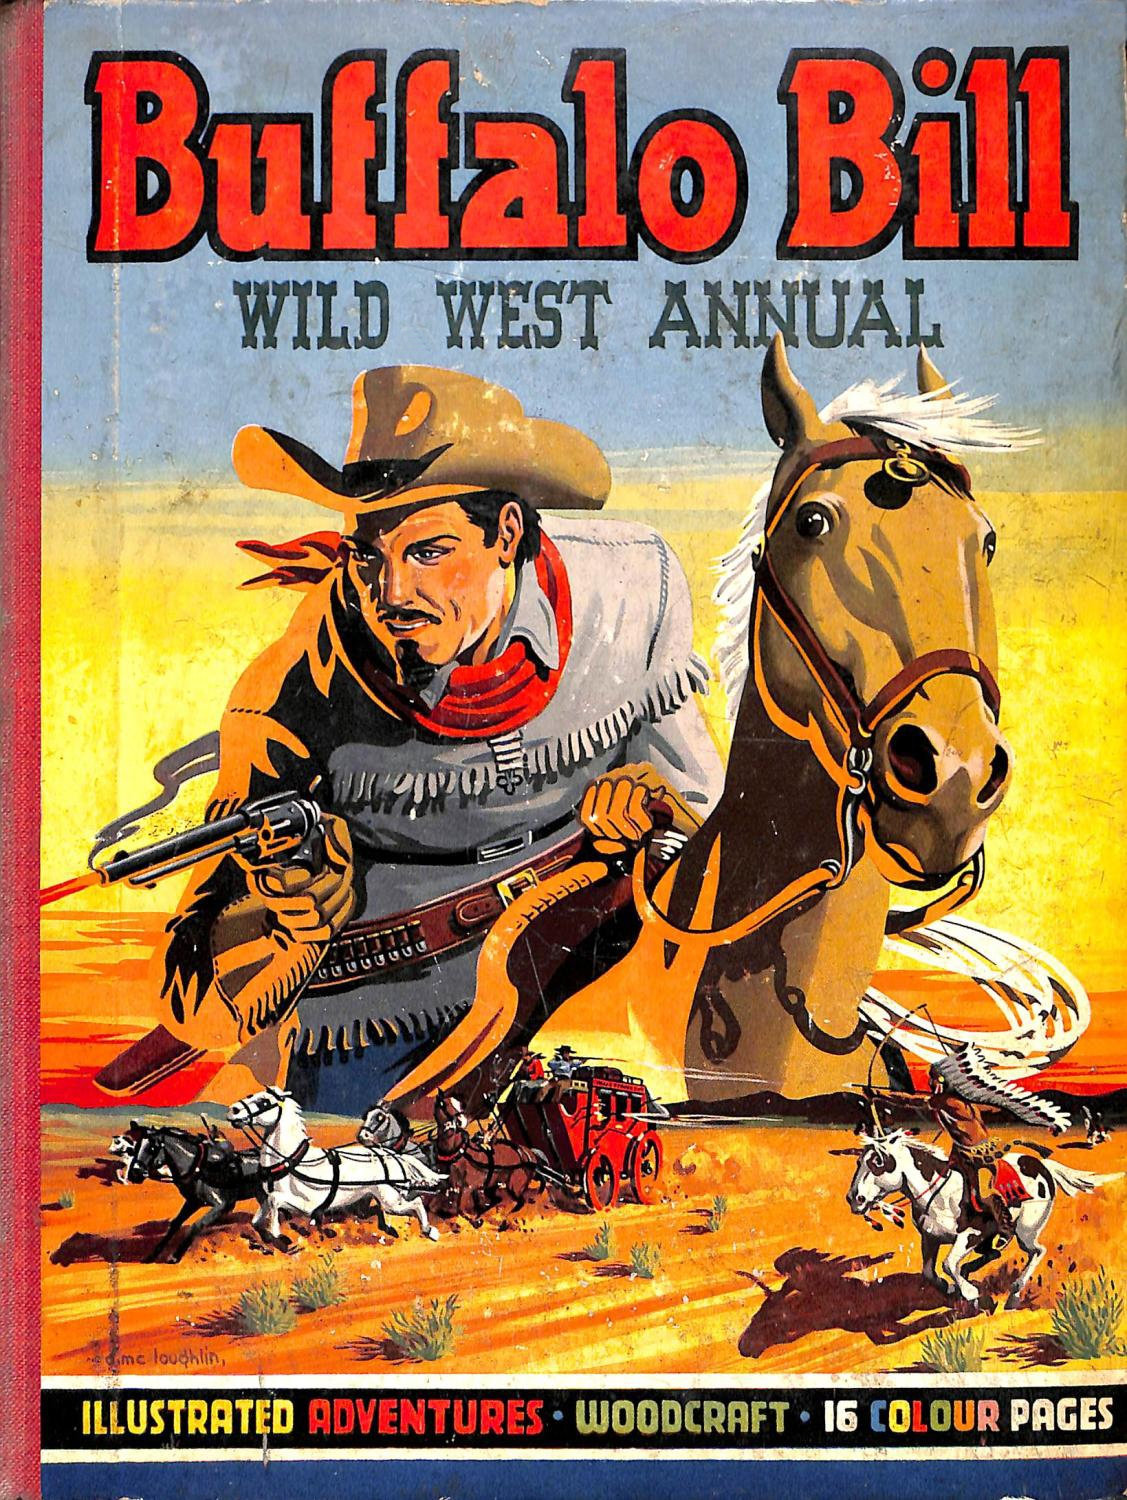 Buffalo Bill Wild West Annual Cover